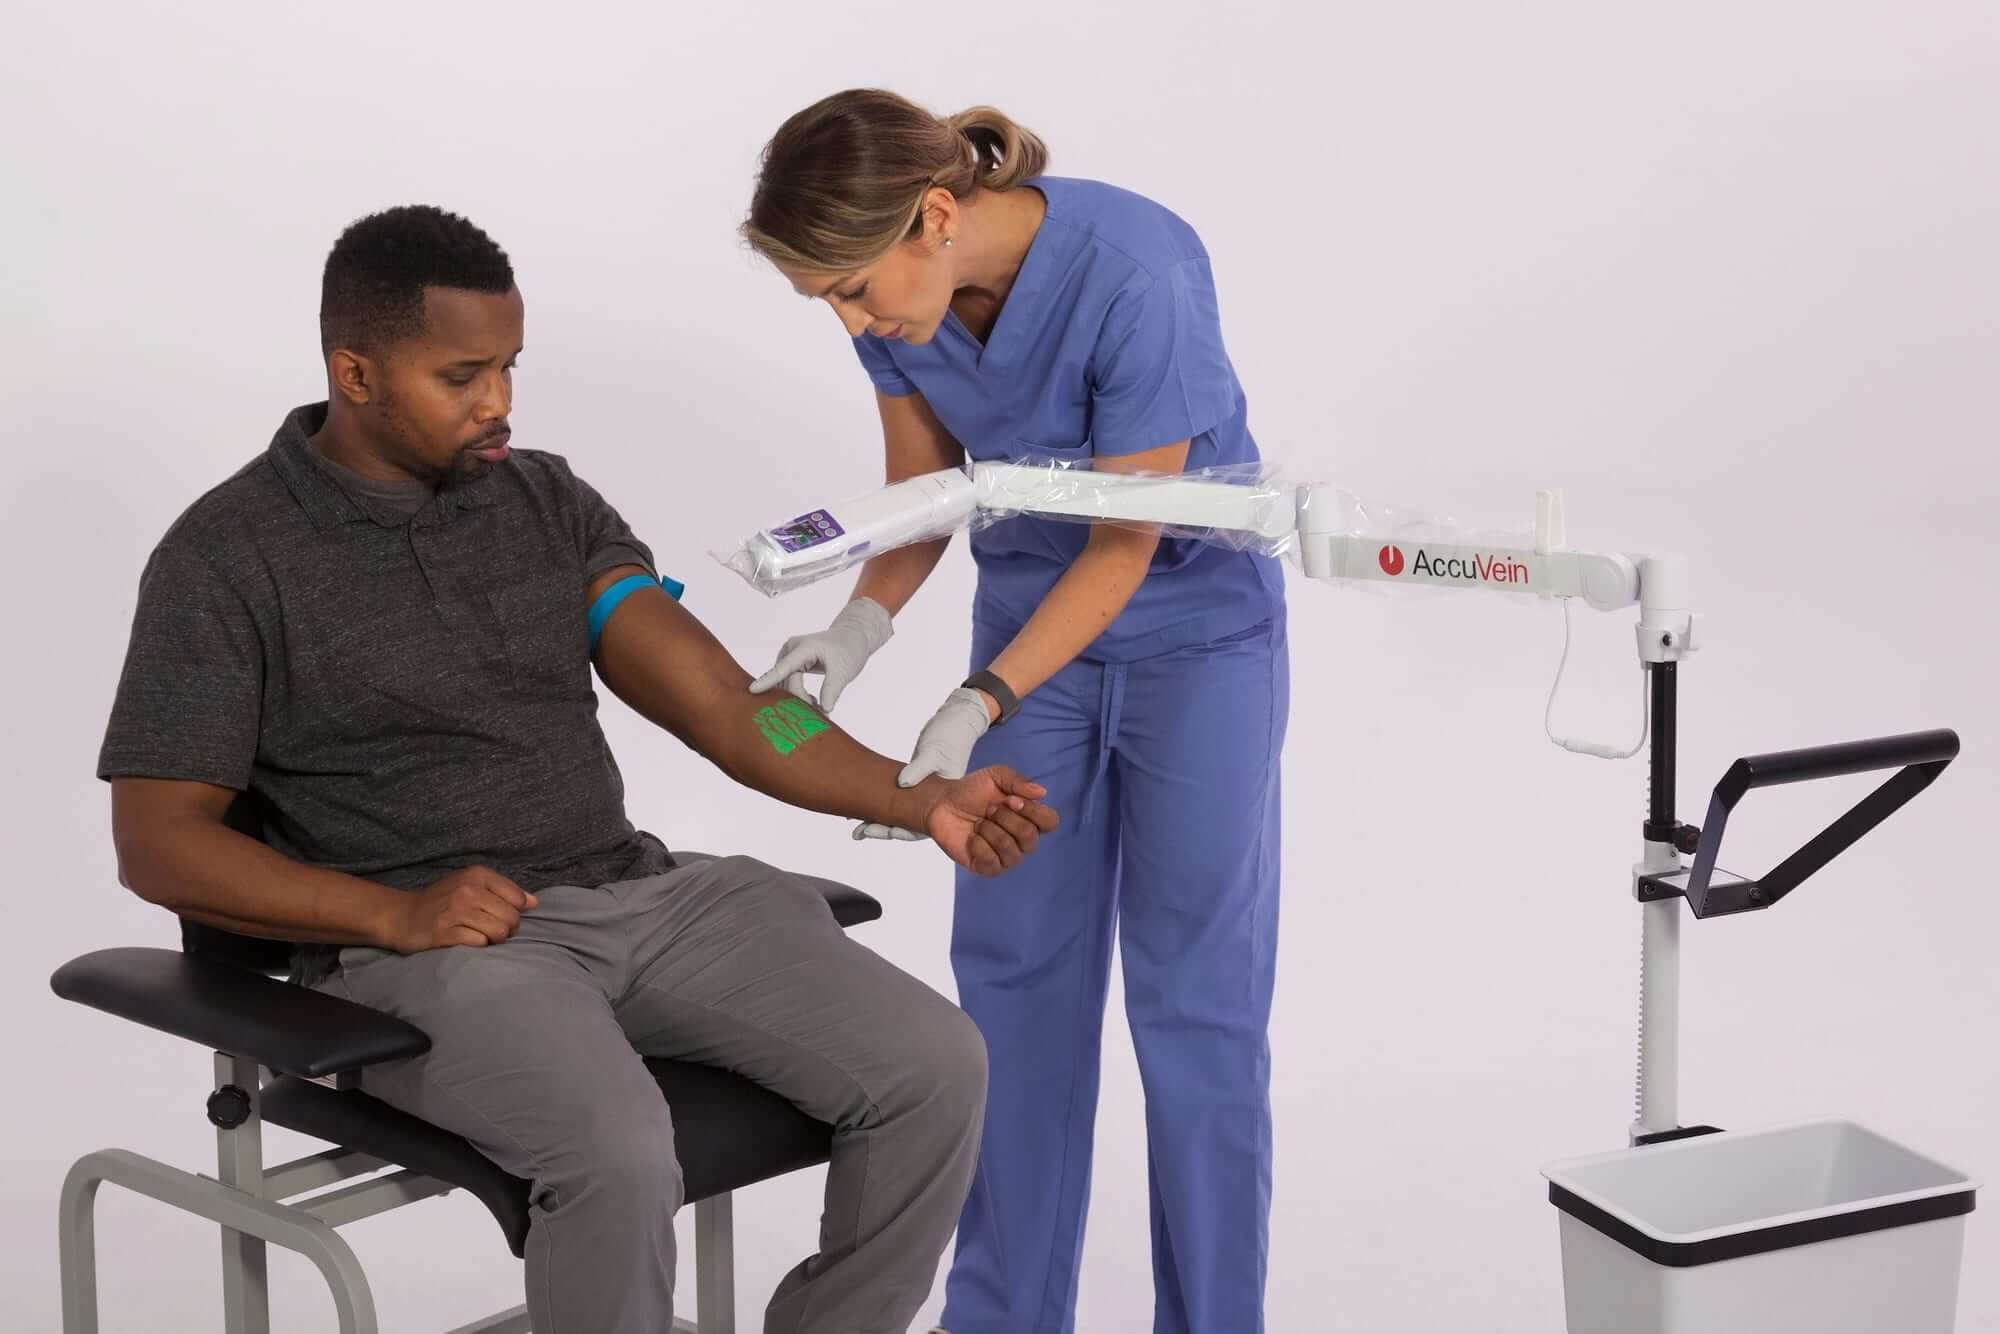 AccuVein AV500 in use with wheeled stand